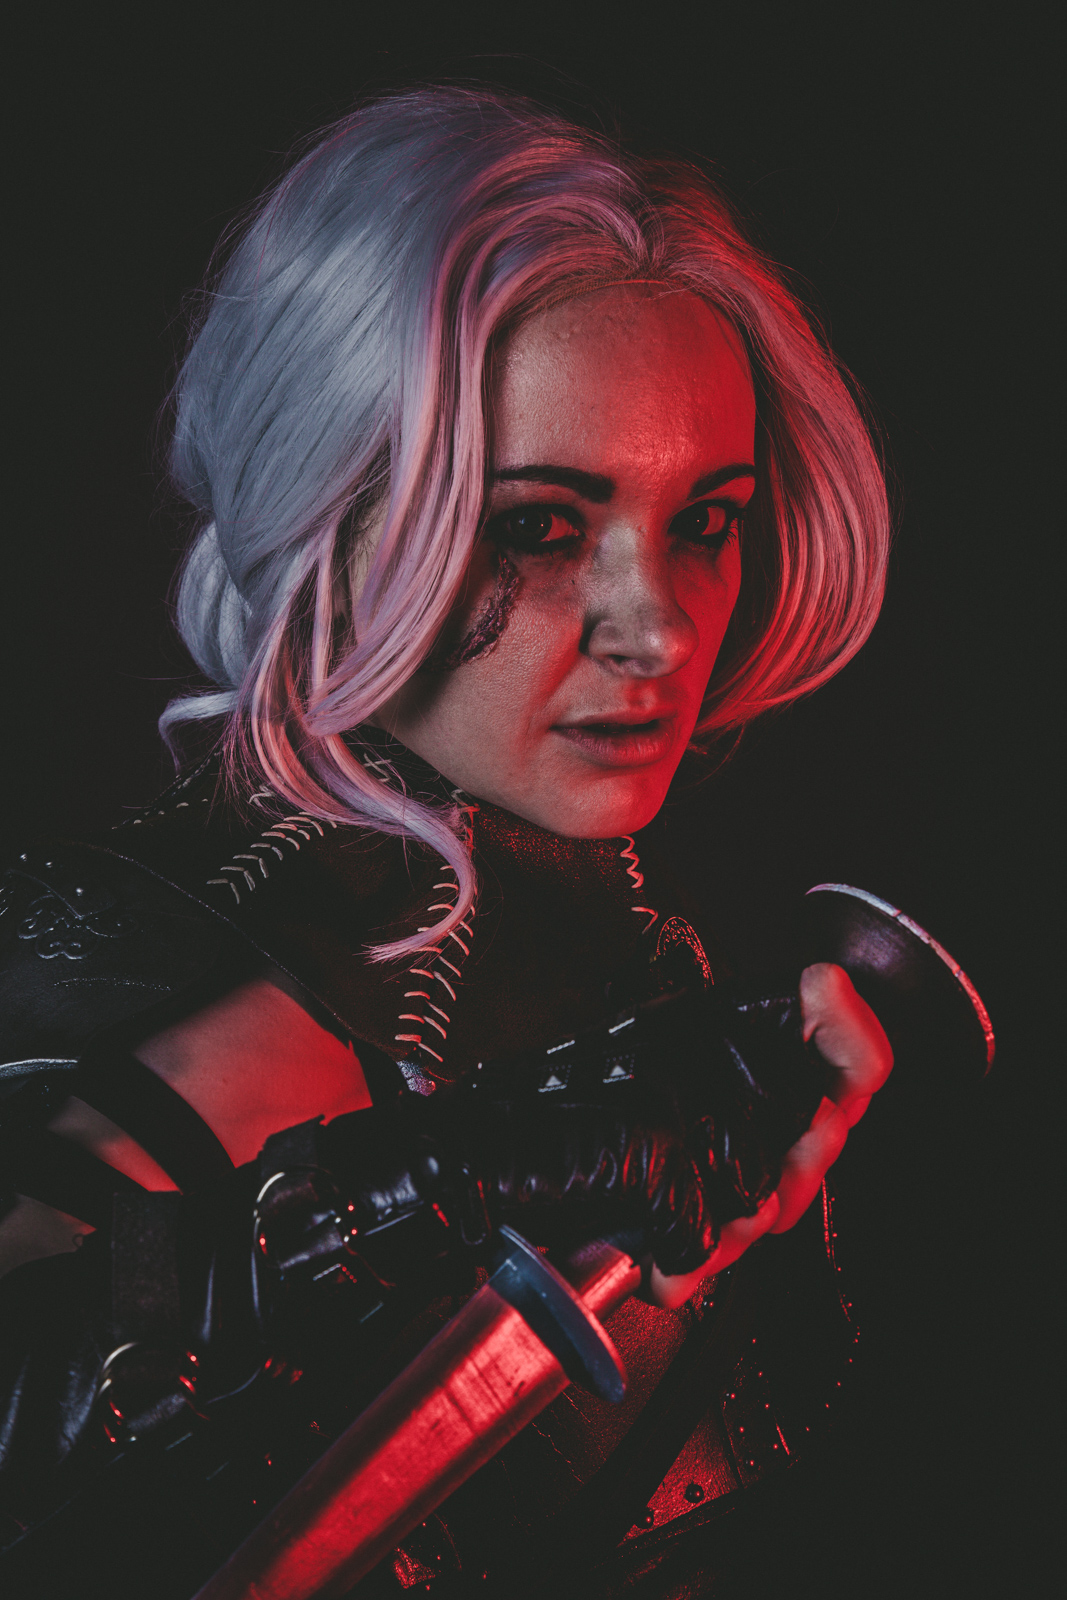 Ciri from Witcher